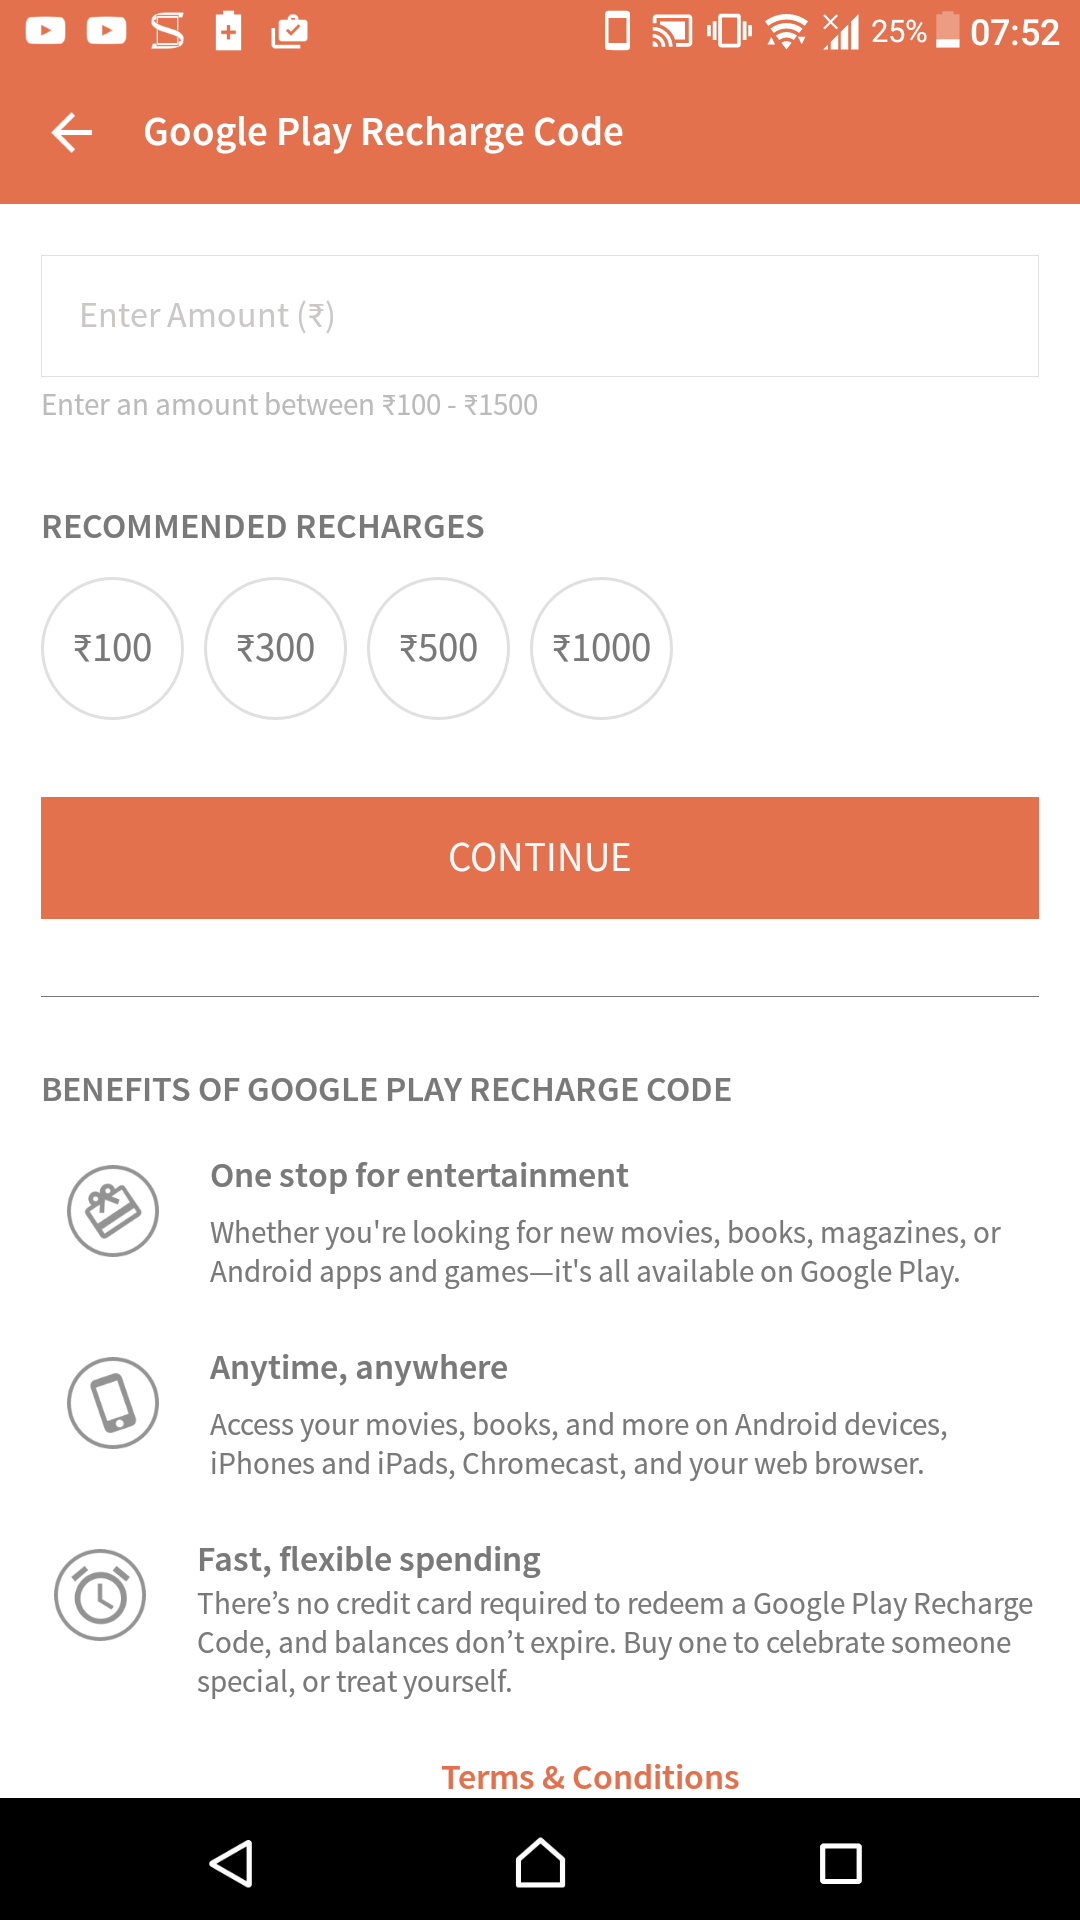 Update: FreeCharge too] Google Play credit can now be bought